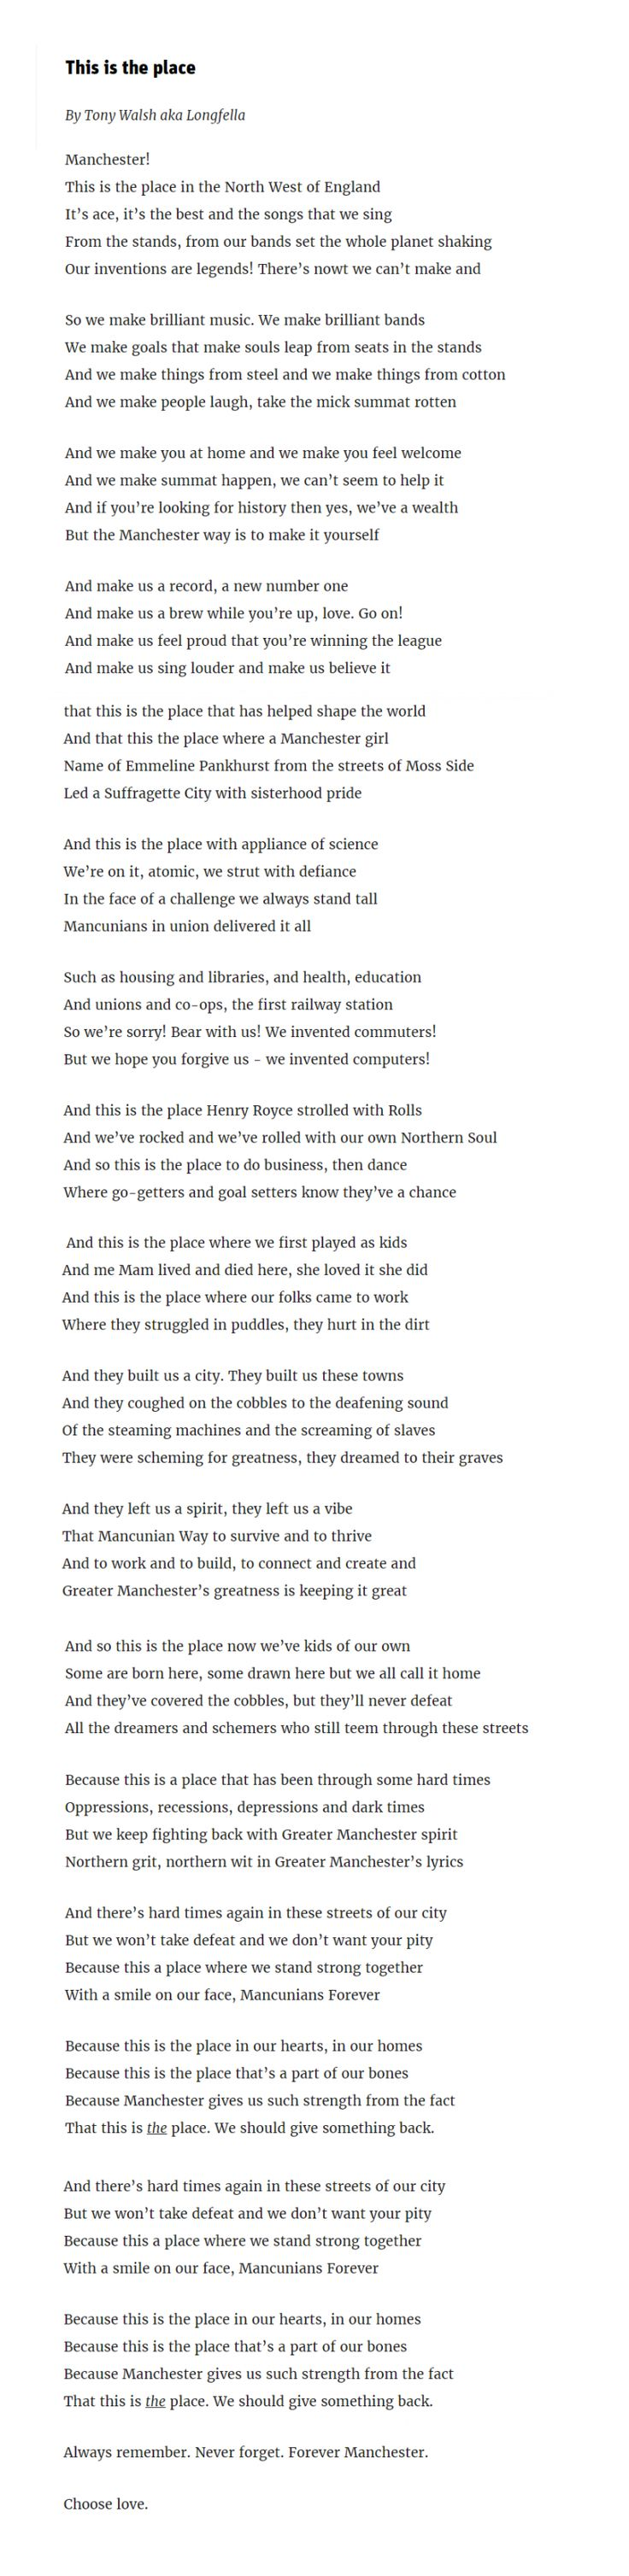 This is the place: the poem Tony Walsh read at the Manchester attack vigil